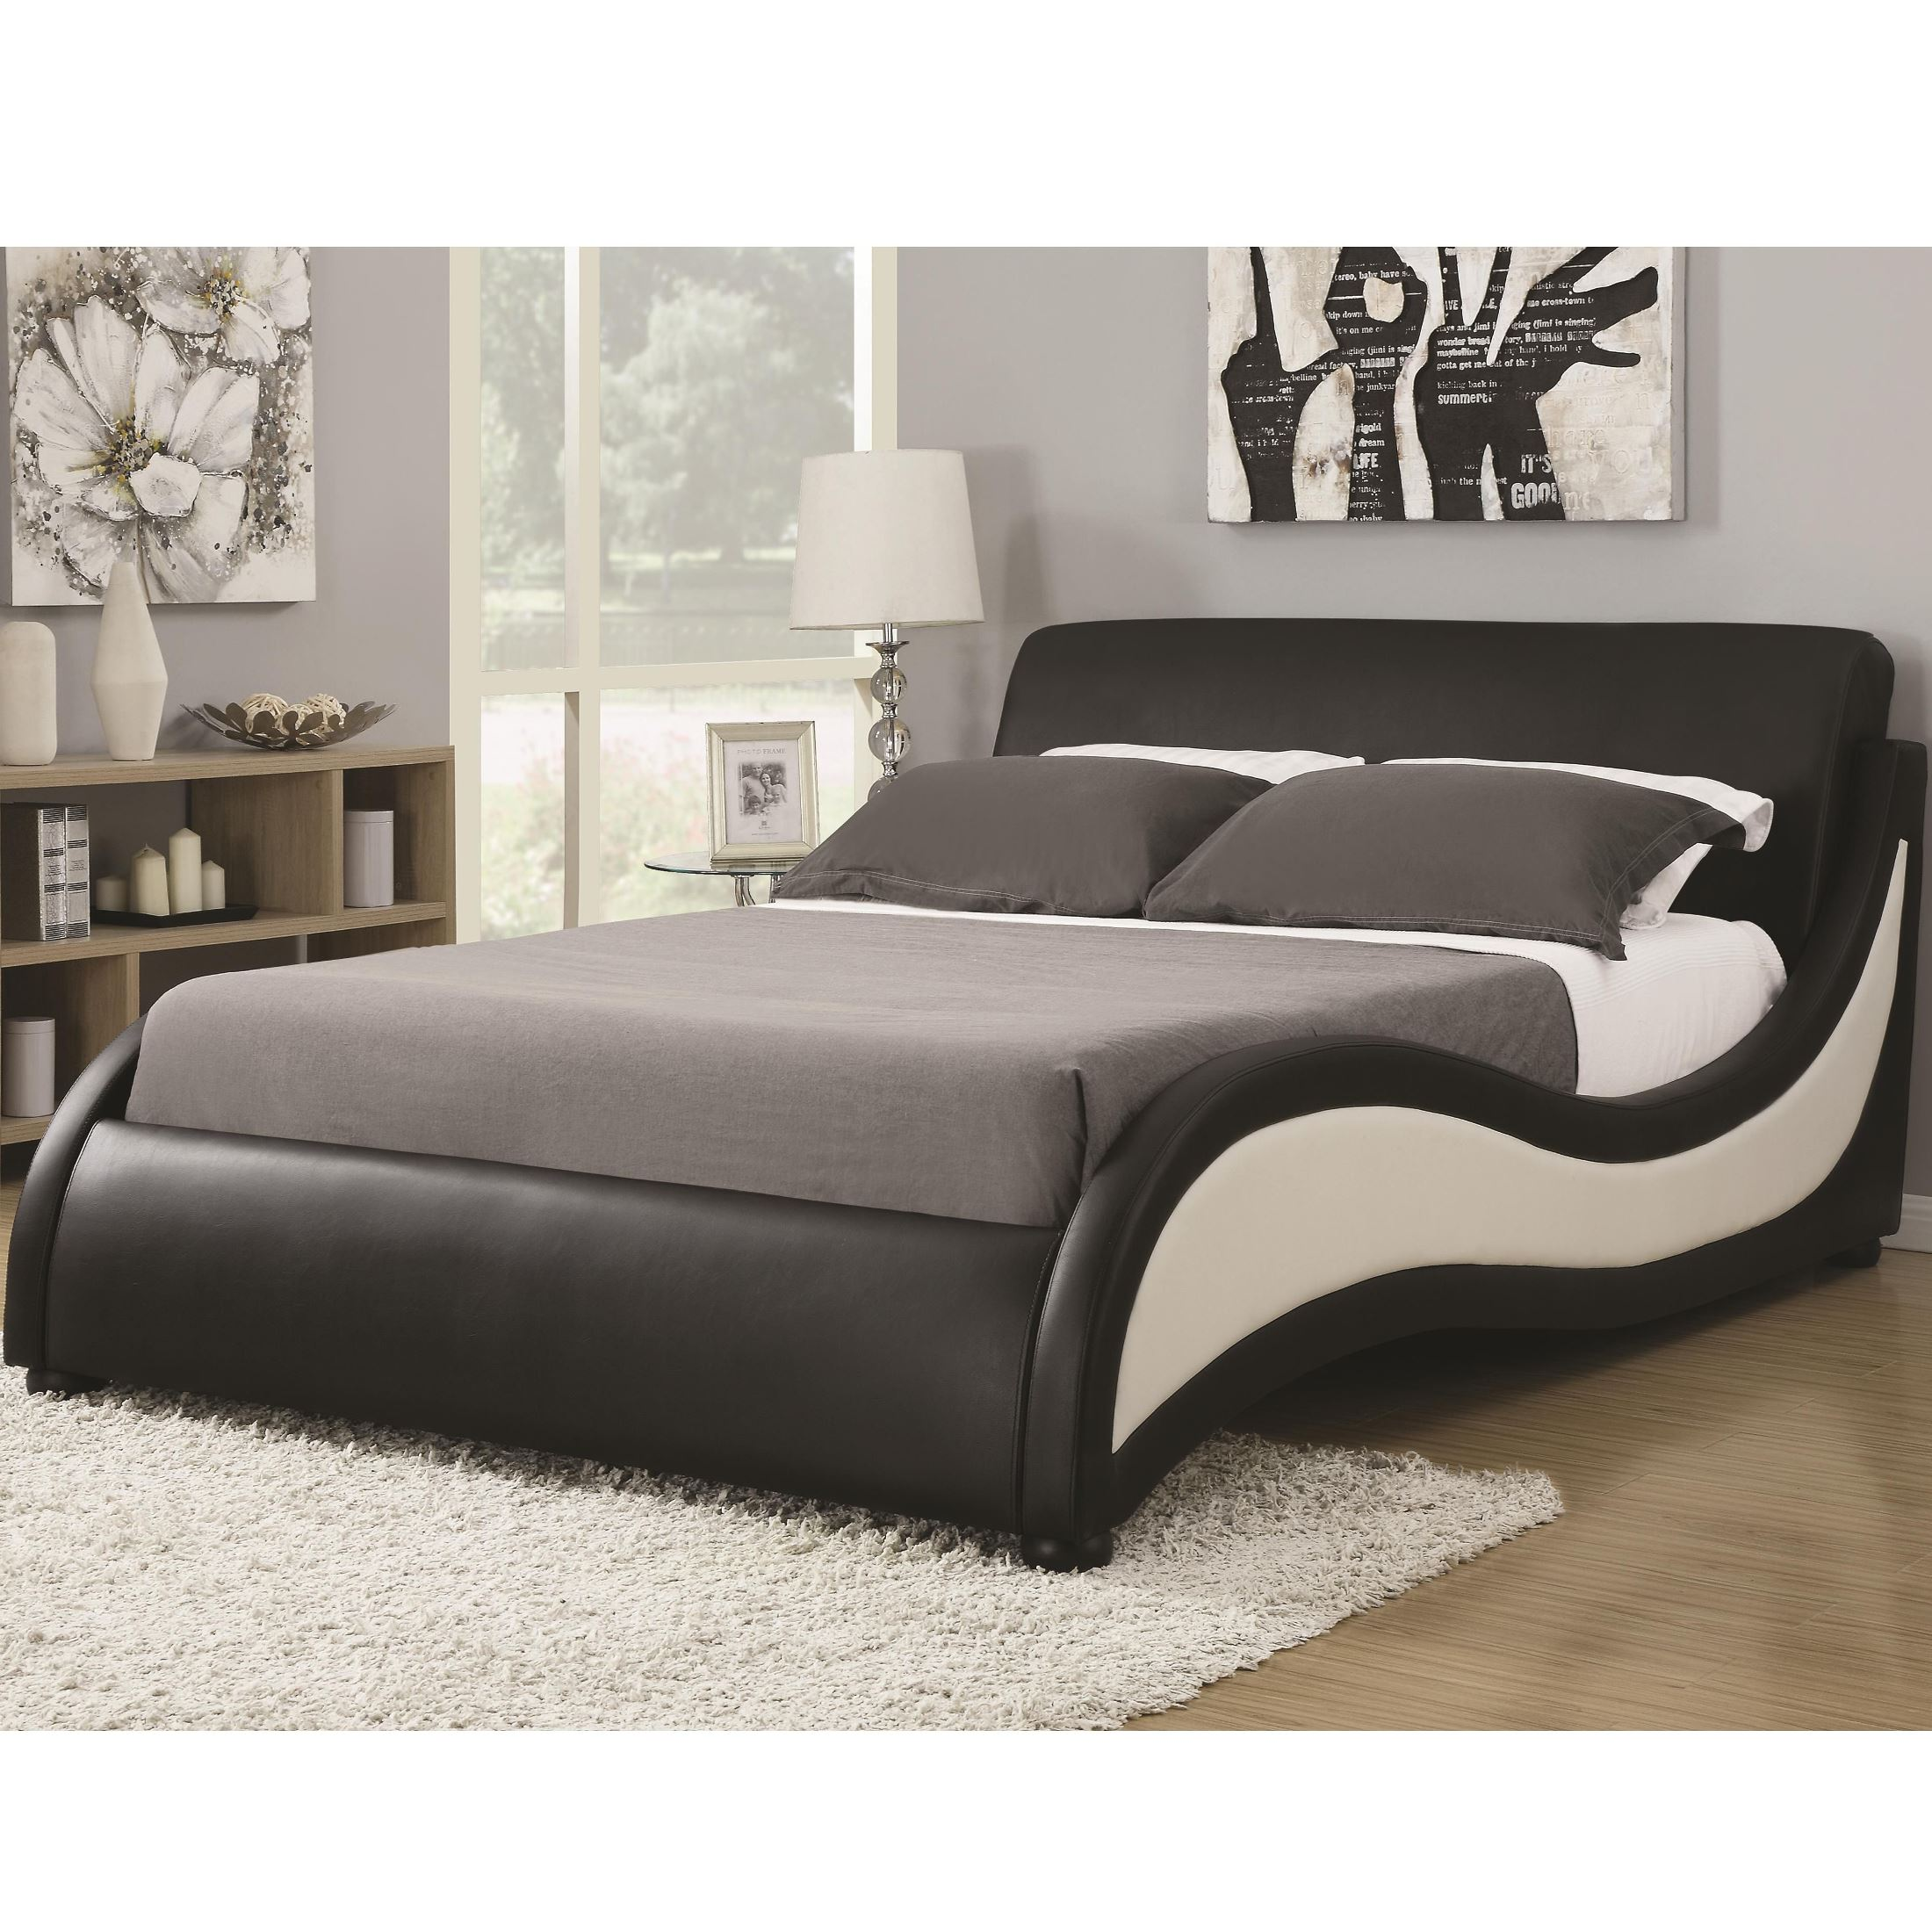 Coaster Niguel Modern Queen Upholstered Bed Niguel